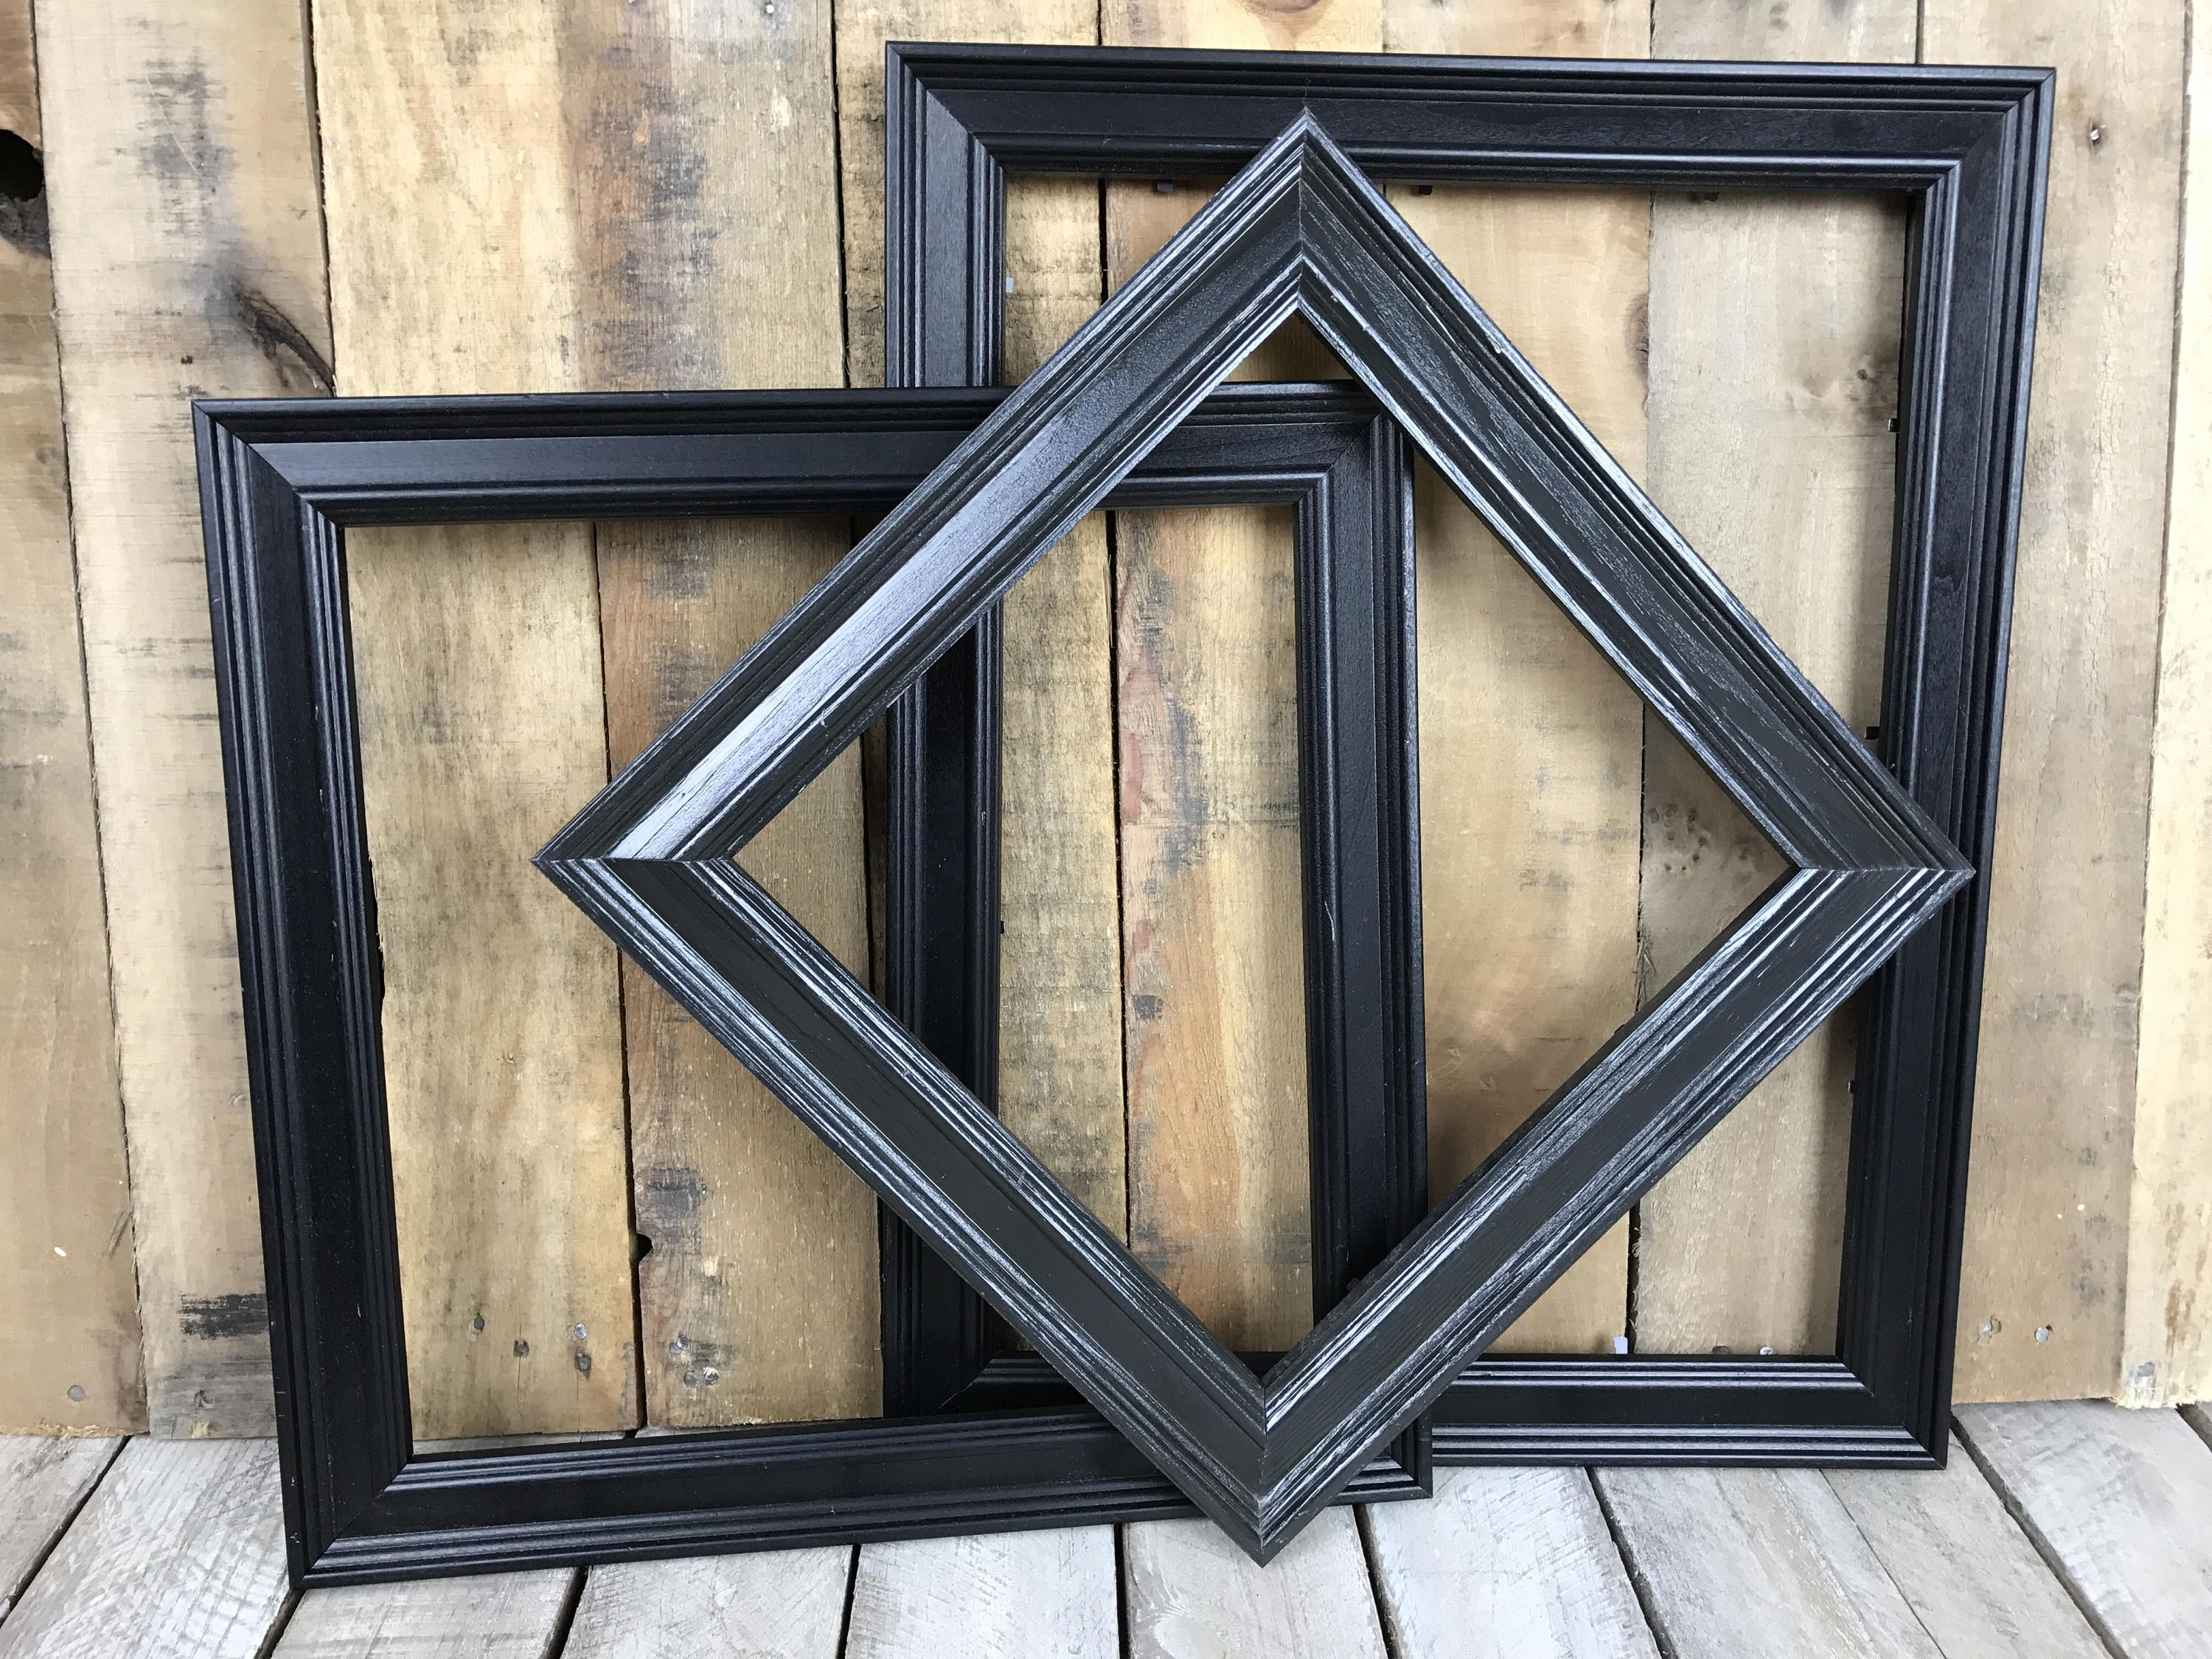 ON SALE - Black Picture Frame Set of 3 Rustic Set, 10x10, 12x12 ...